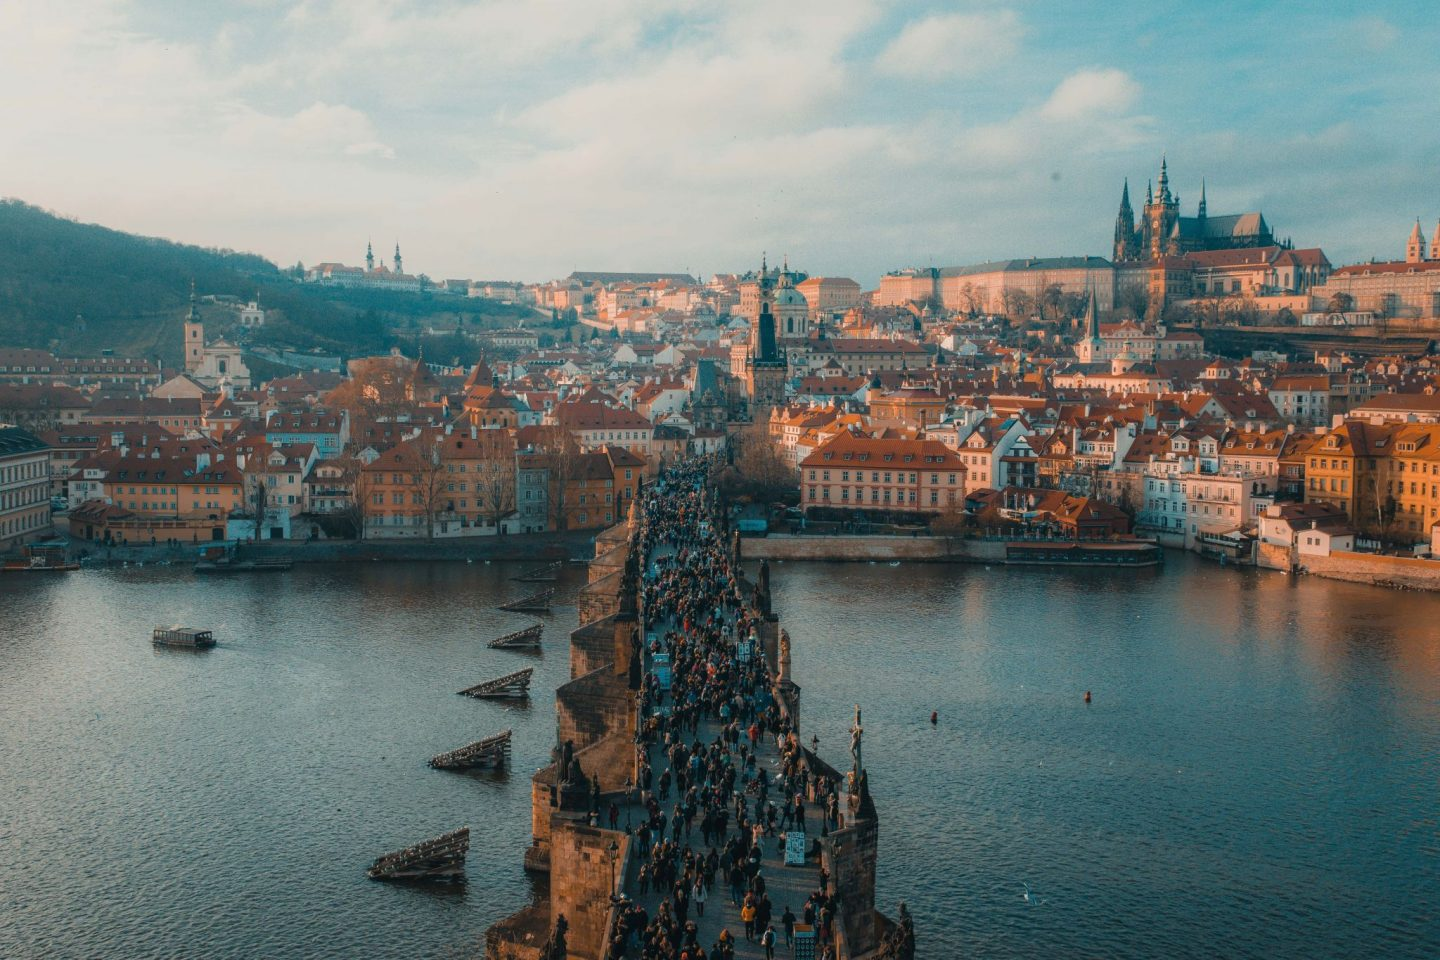 15 OF THE BEST MUST-SEE ATTRACTIONS IN PRAGUE